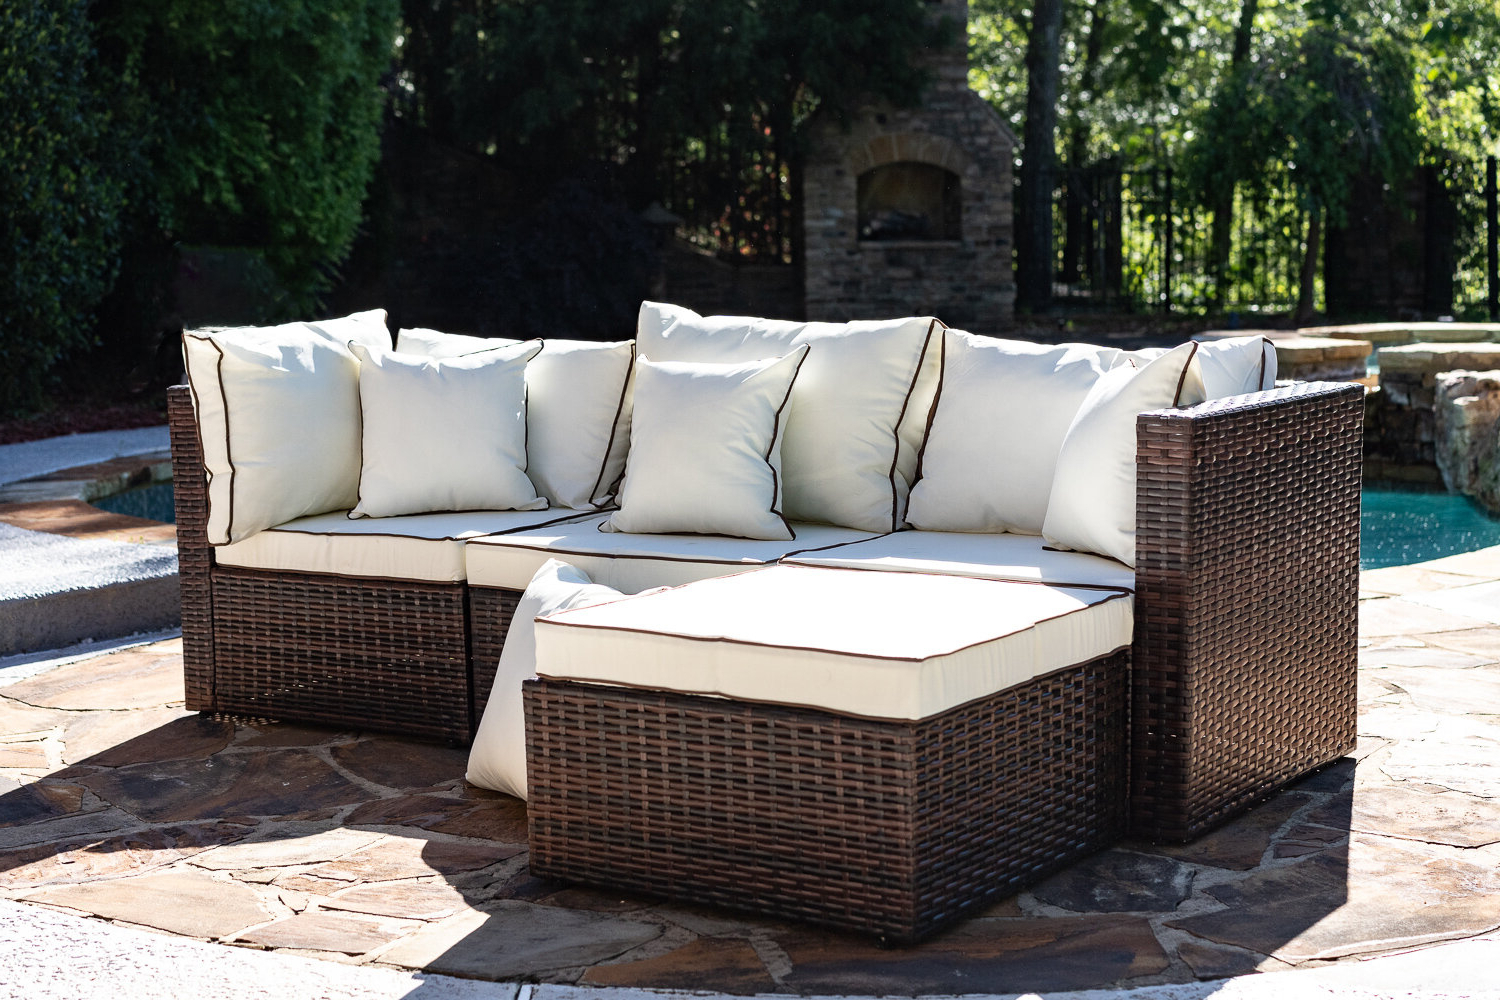 Fashionable Burruss Patio Sectional With Cushions With Regard To Katzer Patio Sofas With Cushions (View 6 of 20)